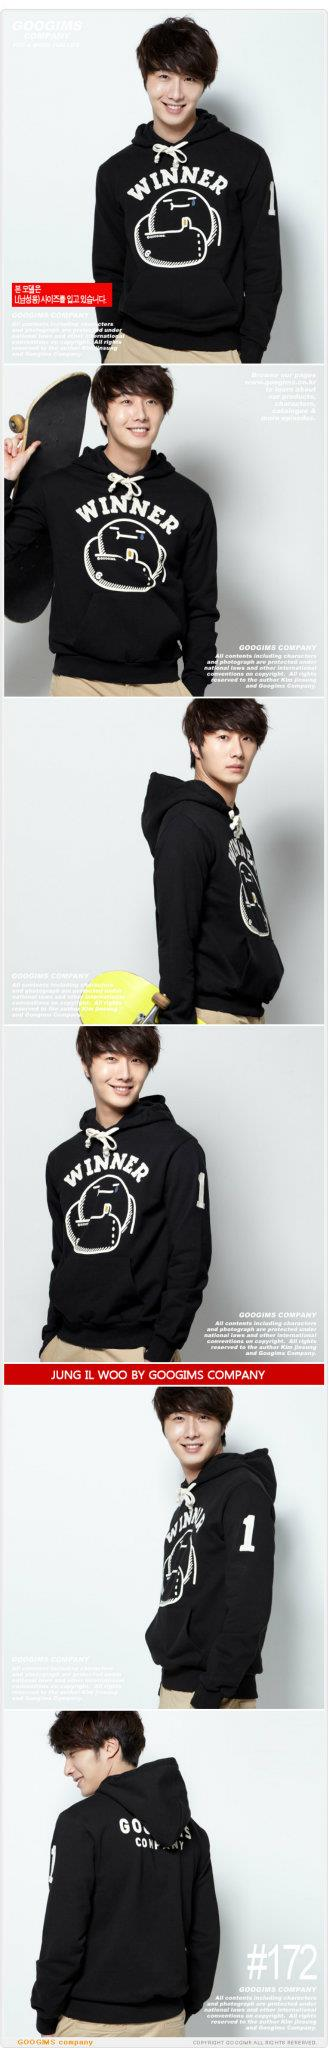 2011 10 Jung II-woo for Googims. Part 100043